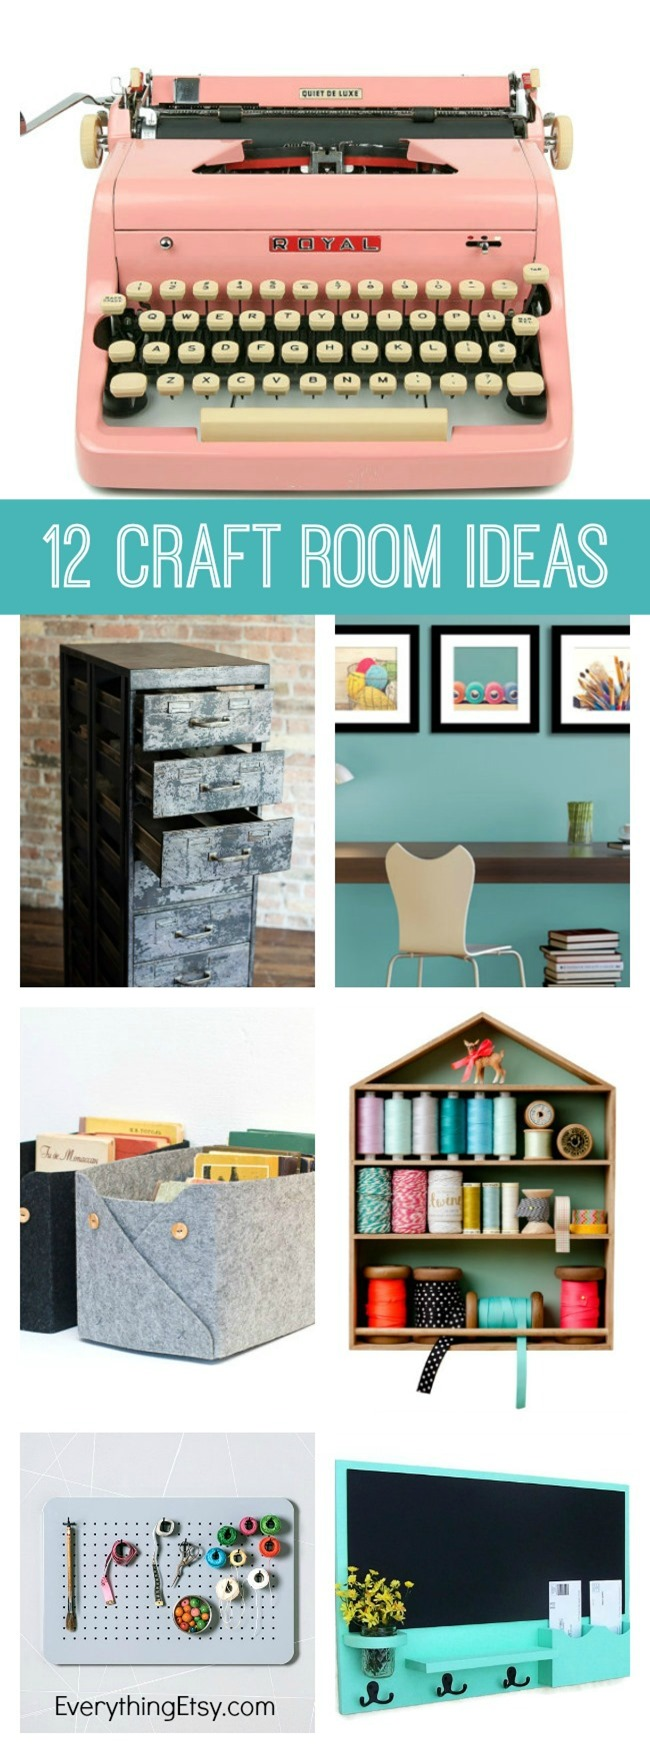 12 Craft Room Decorating Ideas on Etsy -- EverythingEtsy.com